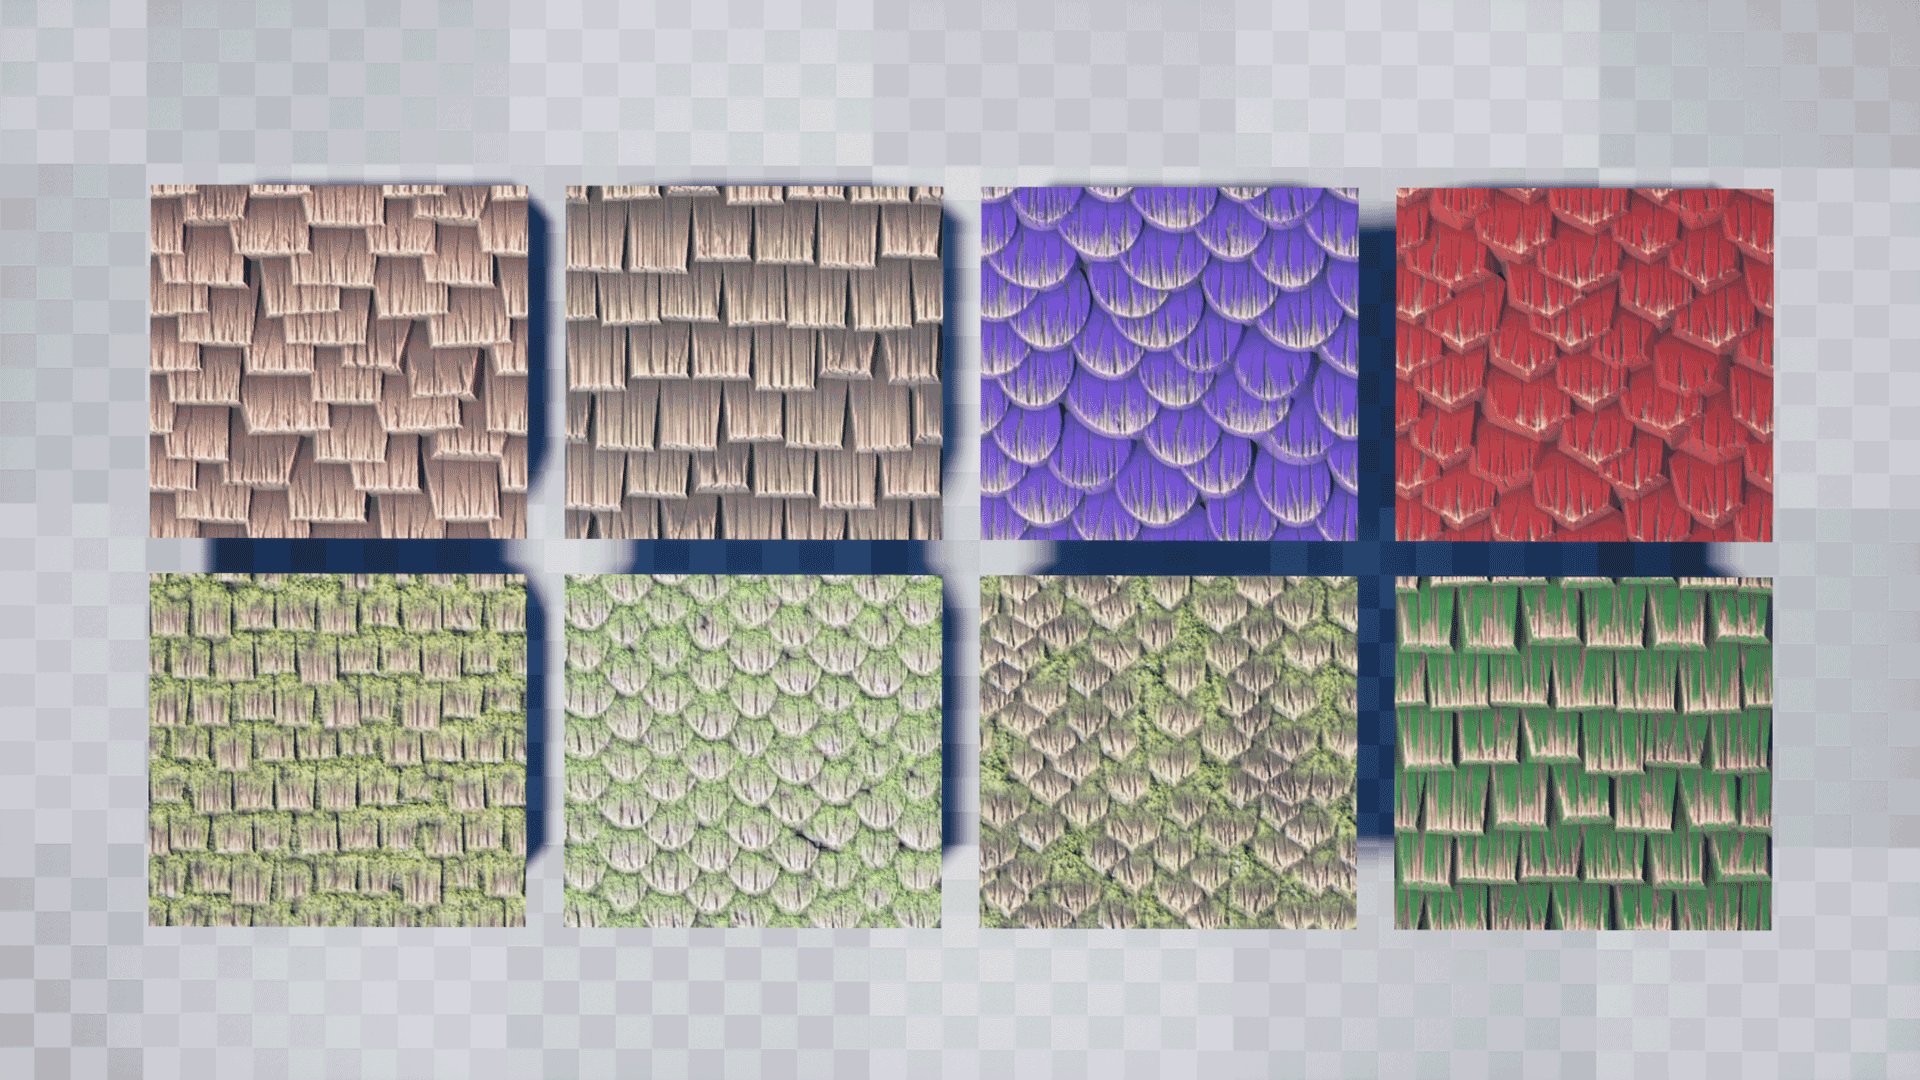 Stylized Wood Shingles Substance Pack by Peter Severud in